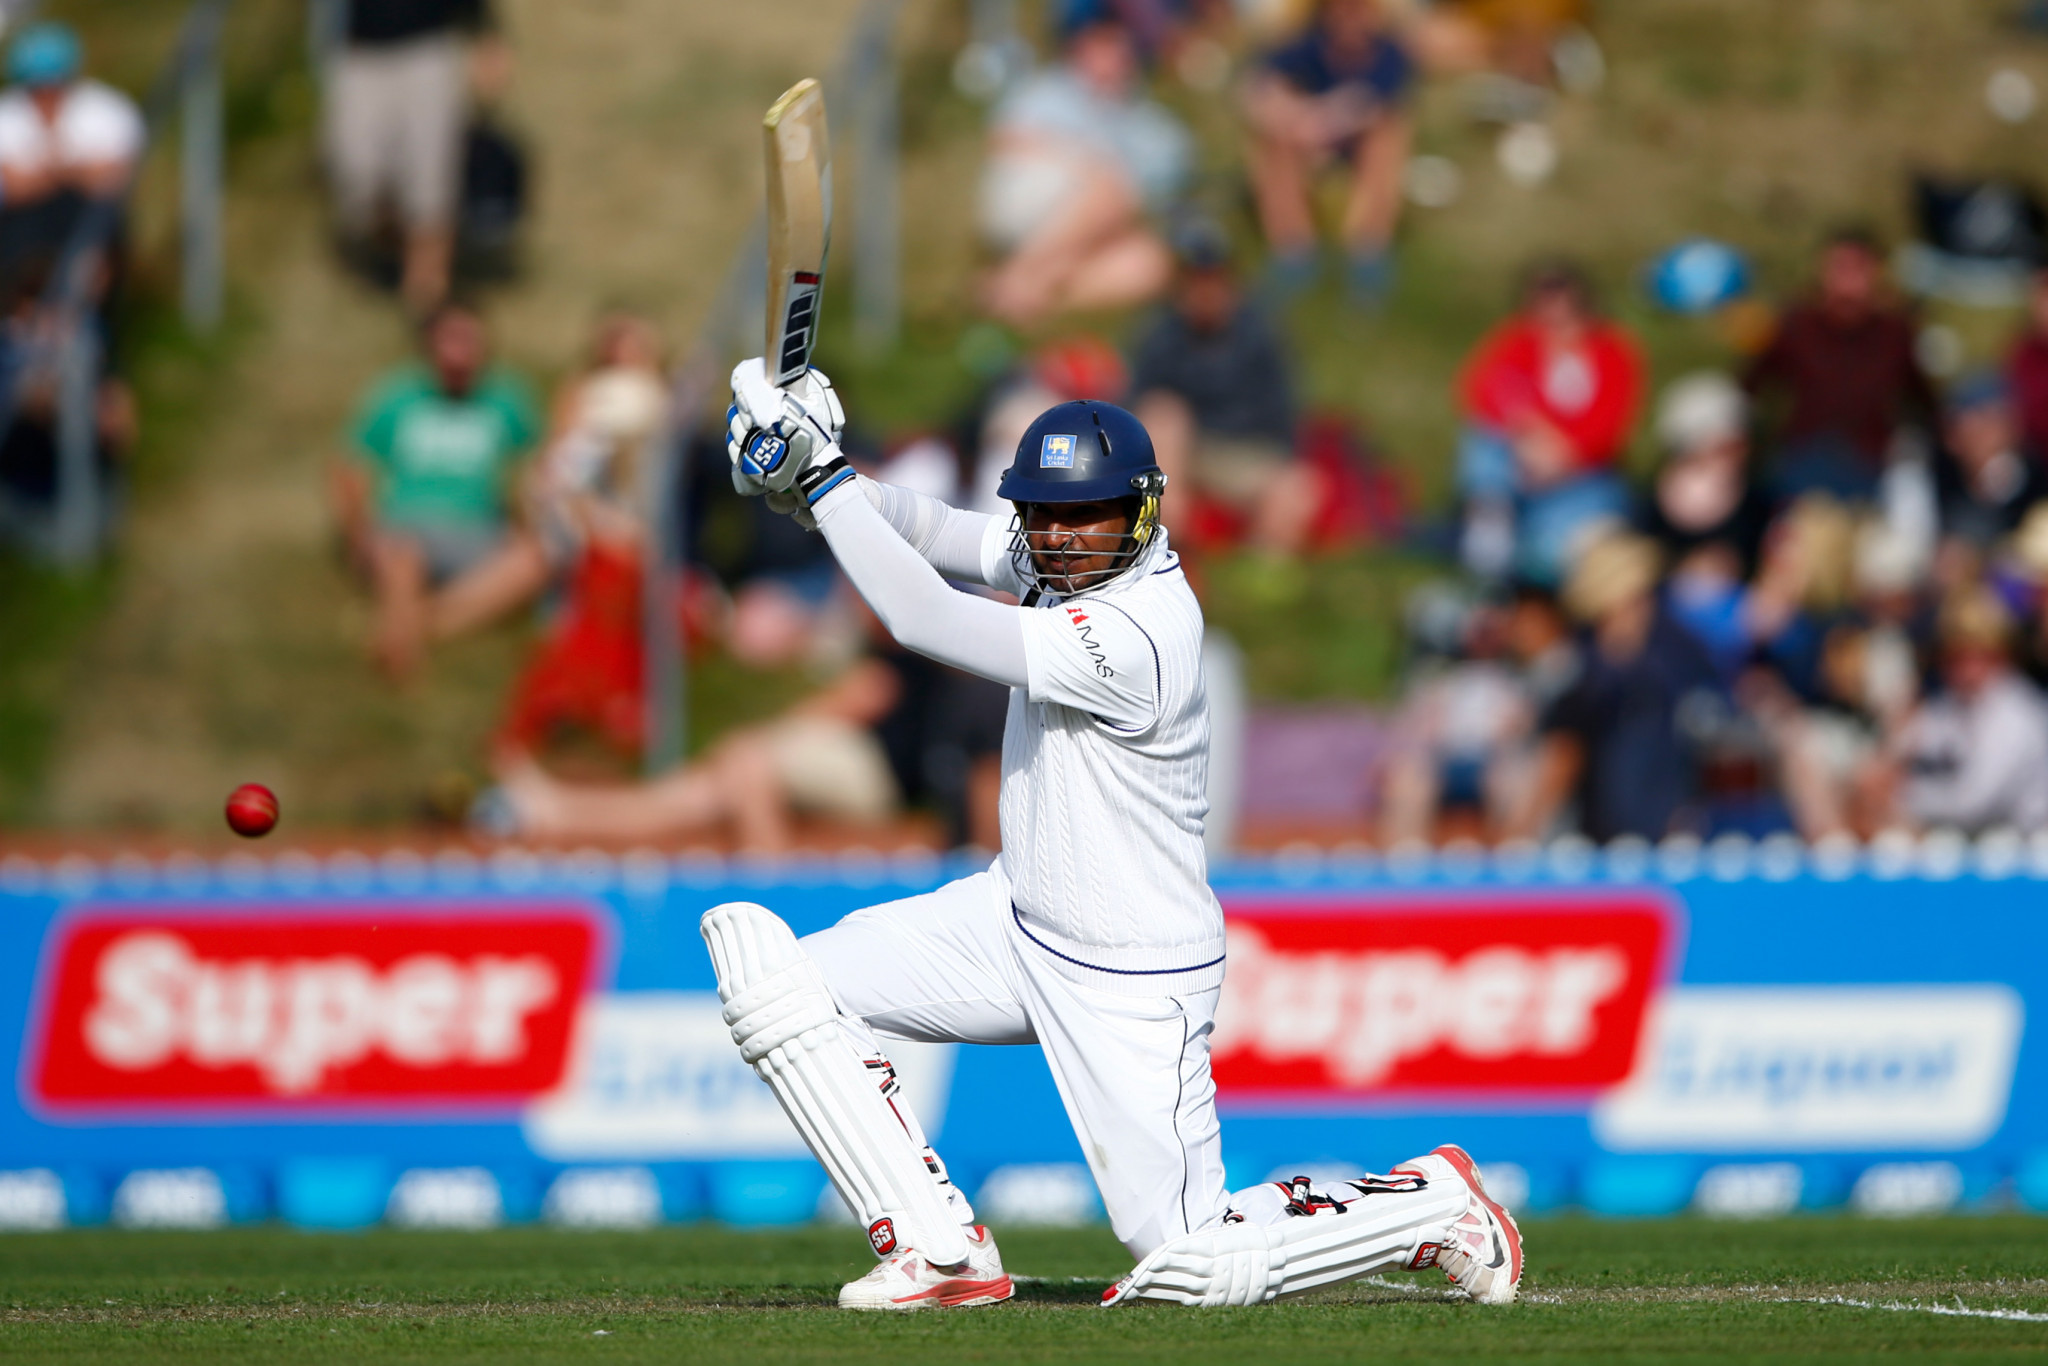 Sri Lanka's Kumar Sangakkara, one of only 13 players to score 10,000 Test runs, is a nominated in two categories